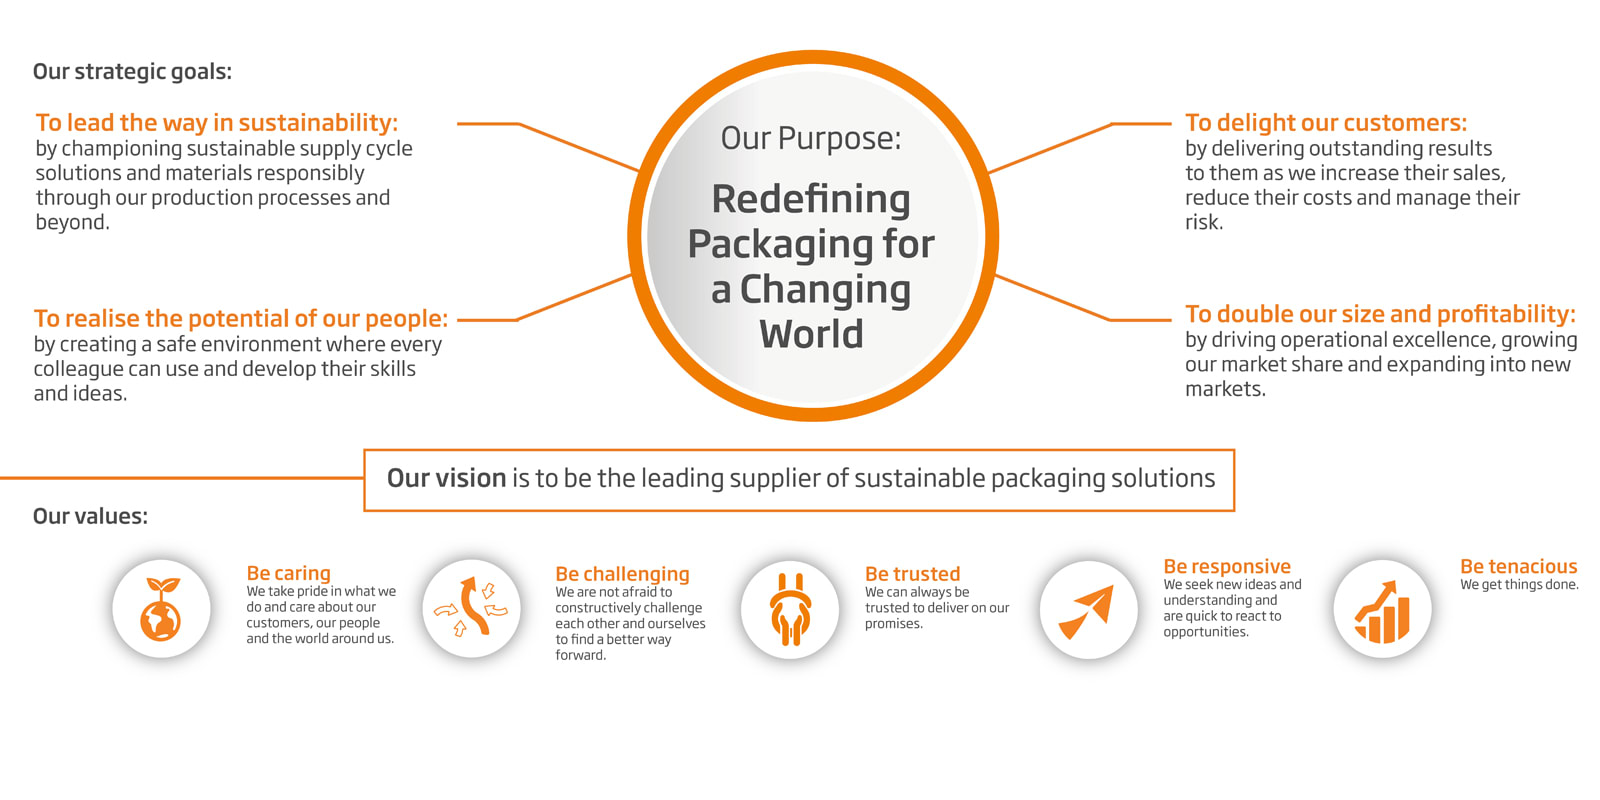 Our Purpose - Redefining Packaging for a Changing World